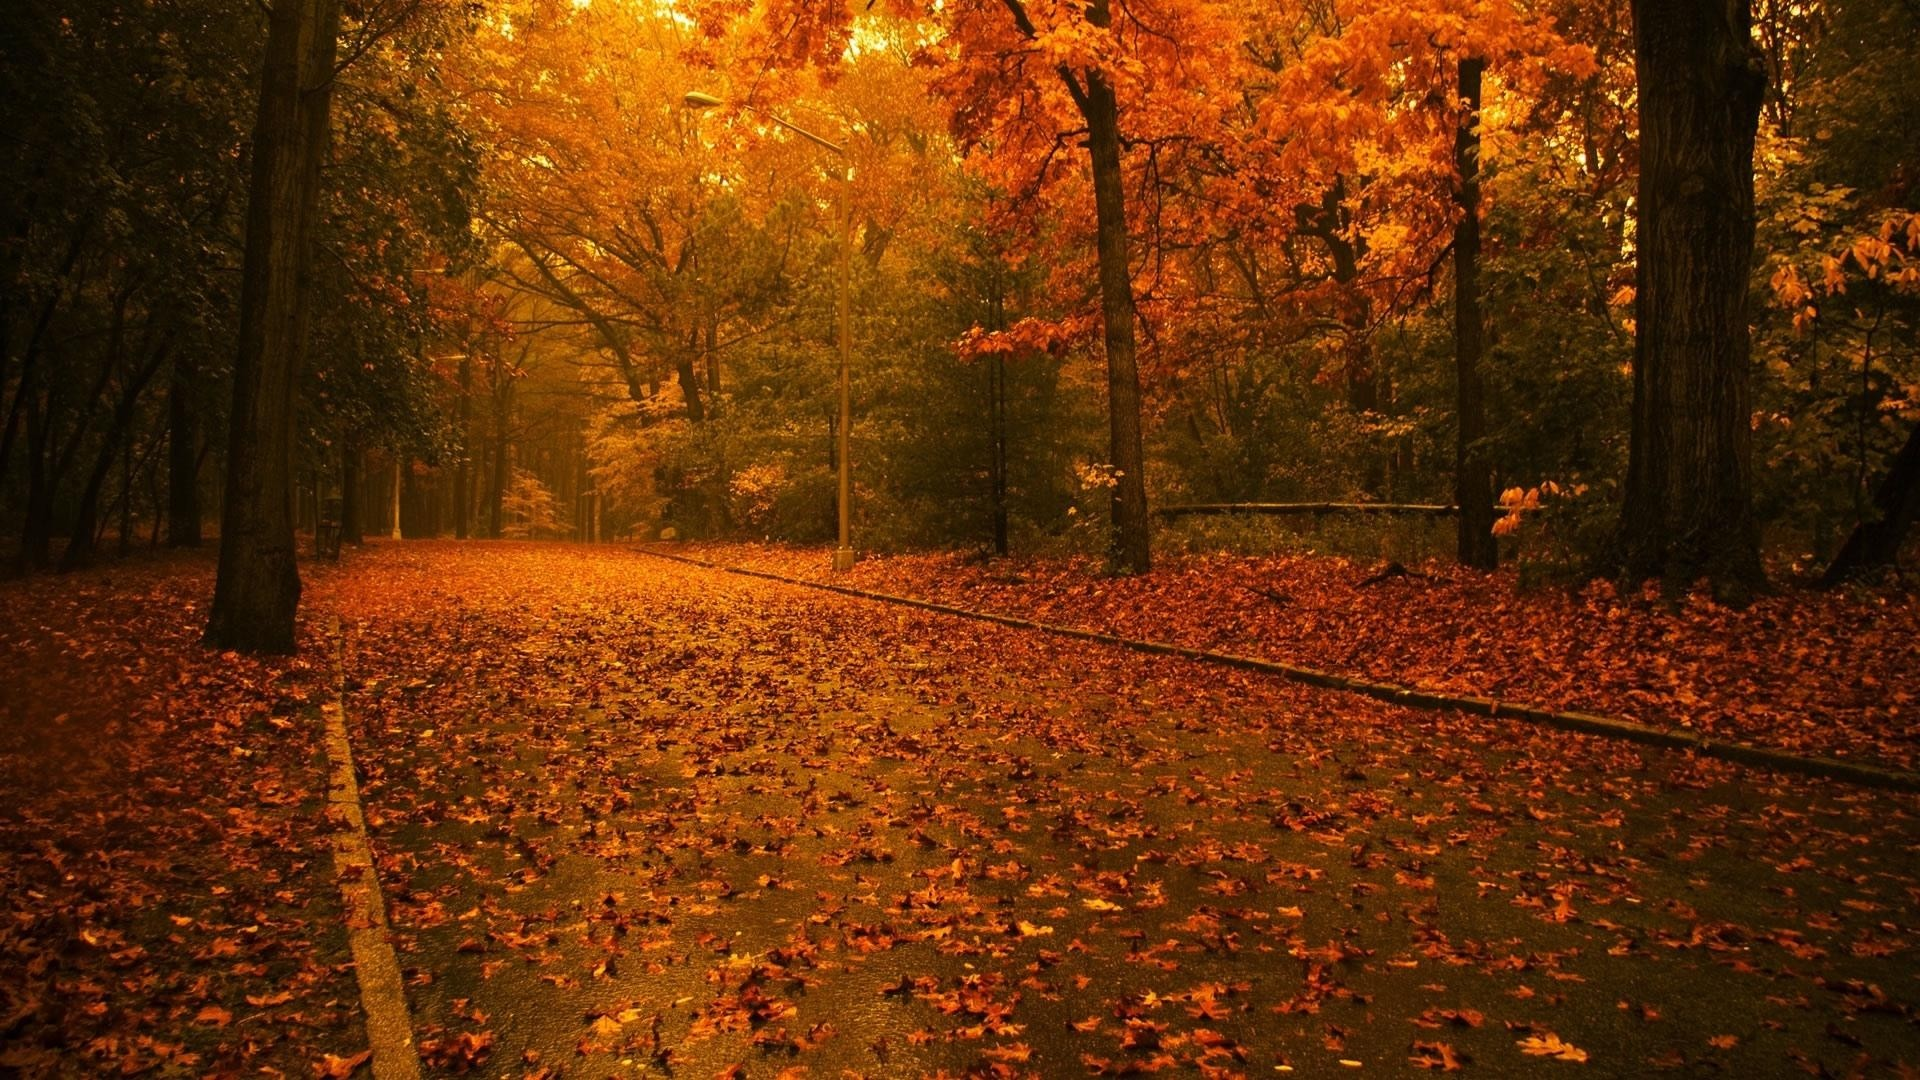 Forest Autumn Beauty Trees Fall Nature Beautiful Forests Wallpapers ...